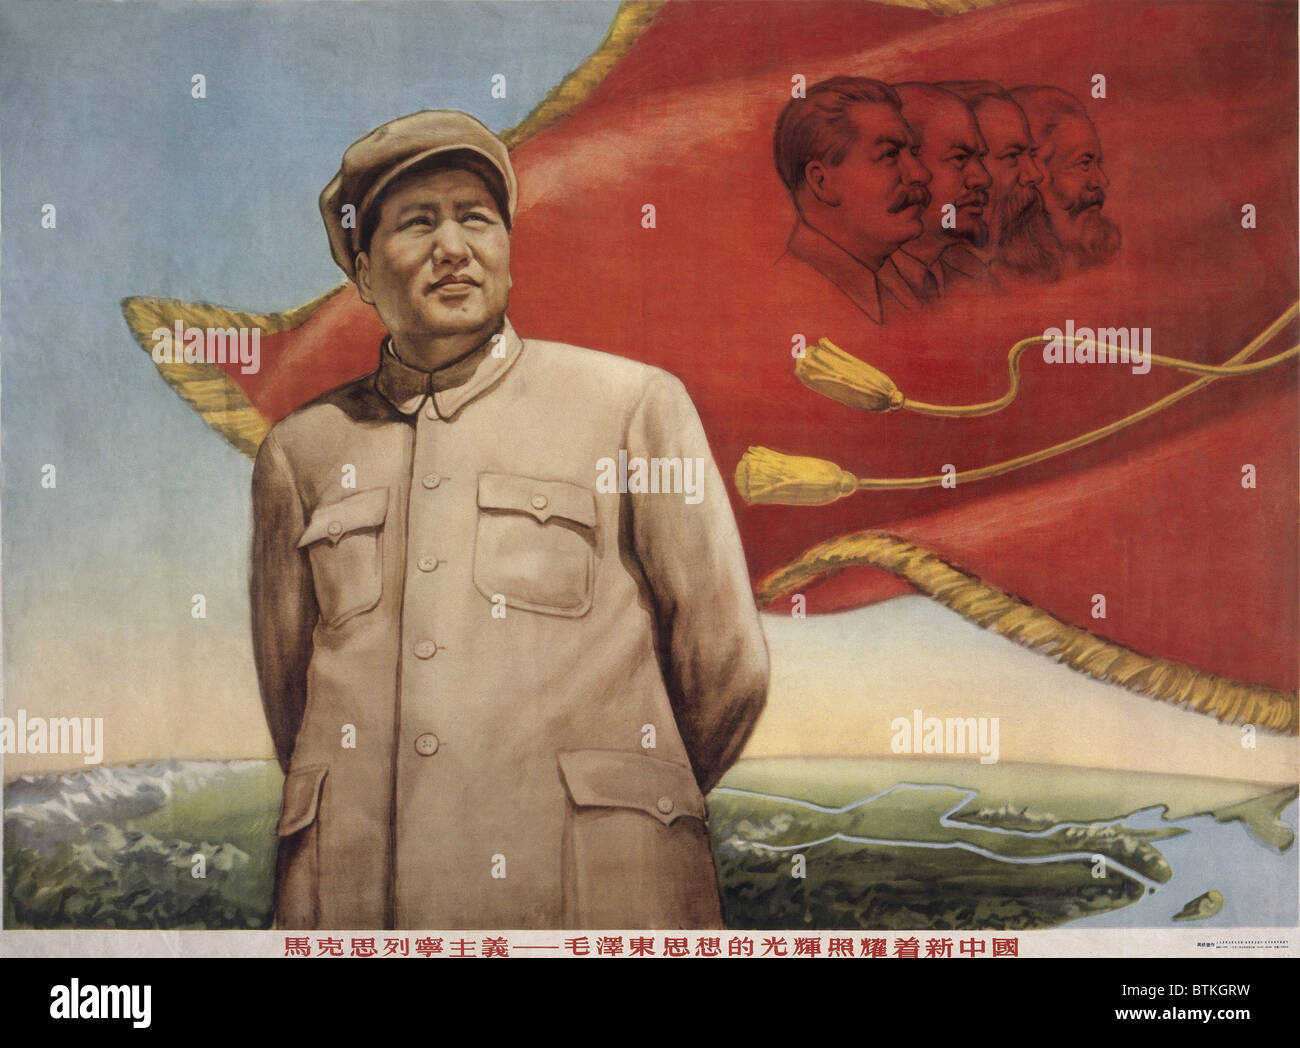 The glory of Mao's ideologies brightens up the new China. Poster shows Mao Zedong standing in front of red flag - Stock Image